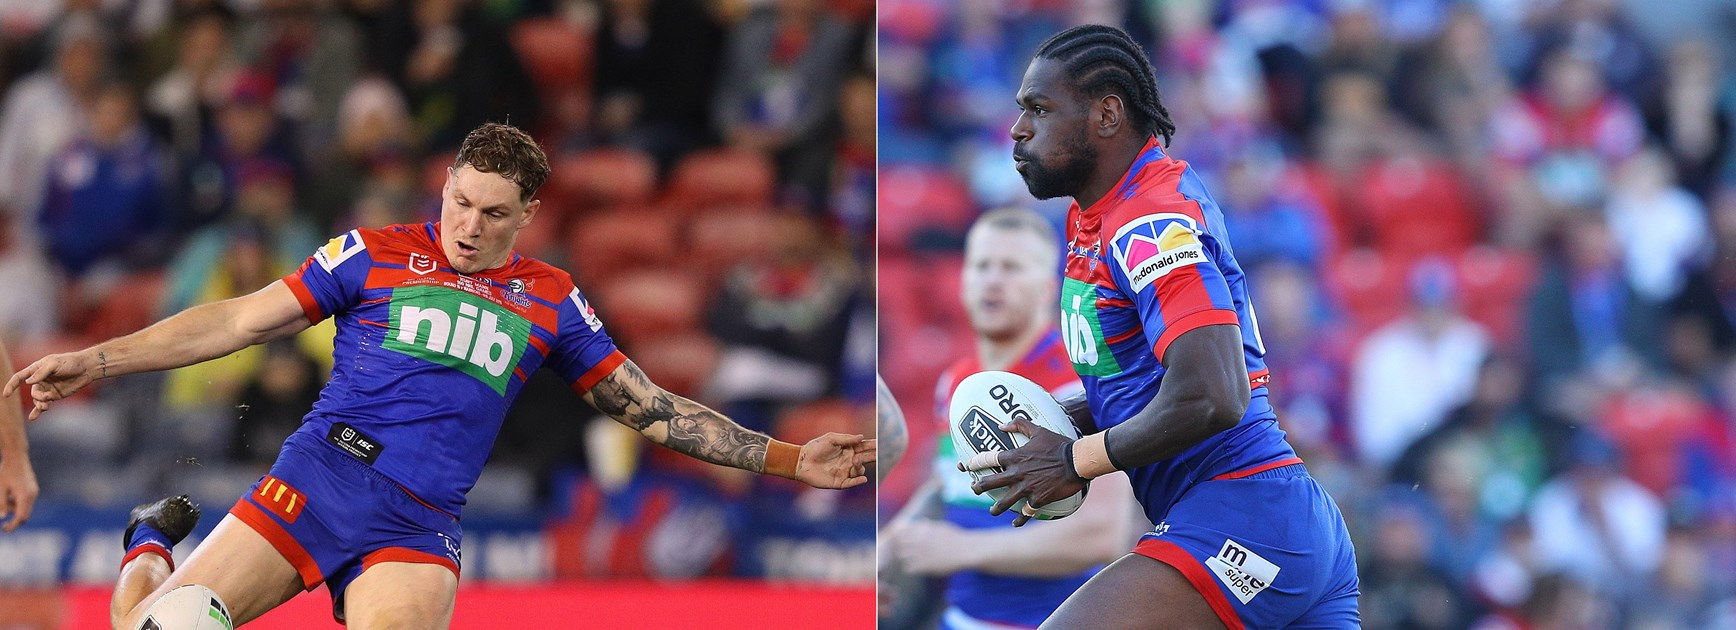 Injury update: Results on Mann's knee and Lee recovery